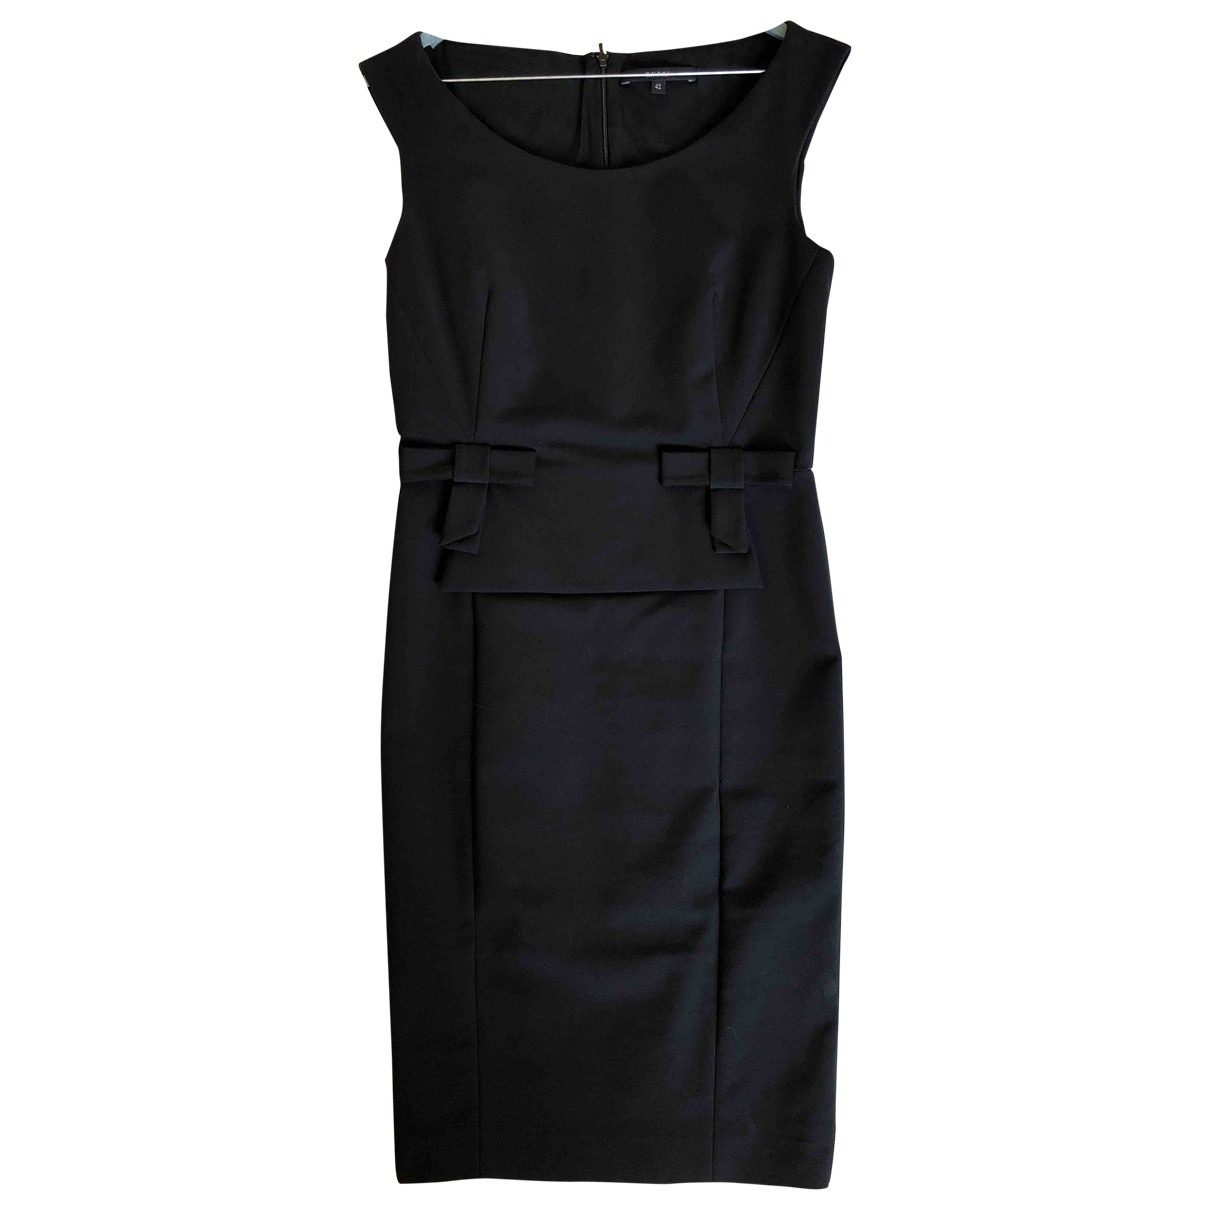 Gucci \N Black Cotton - elasthane dress for Women 42 IT